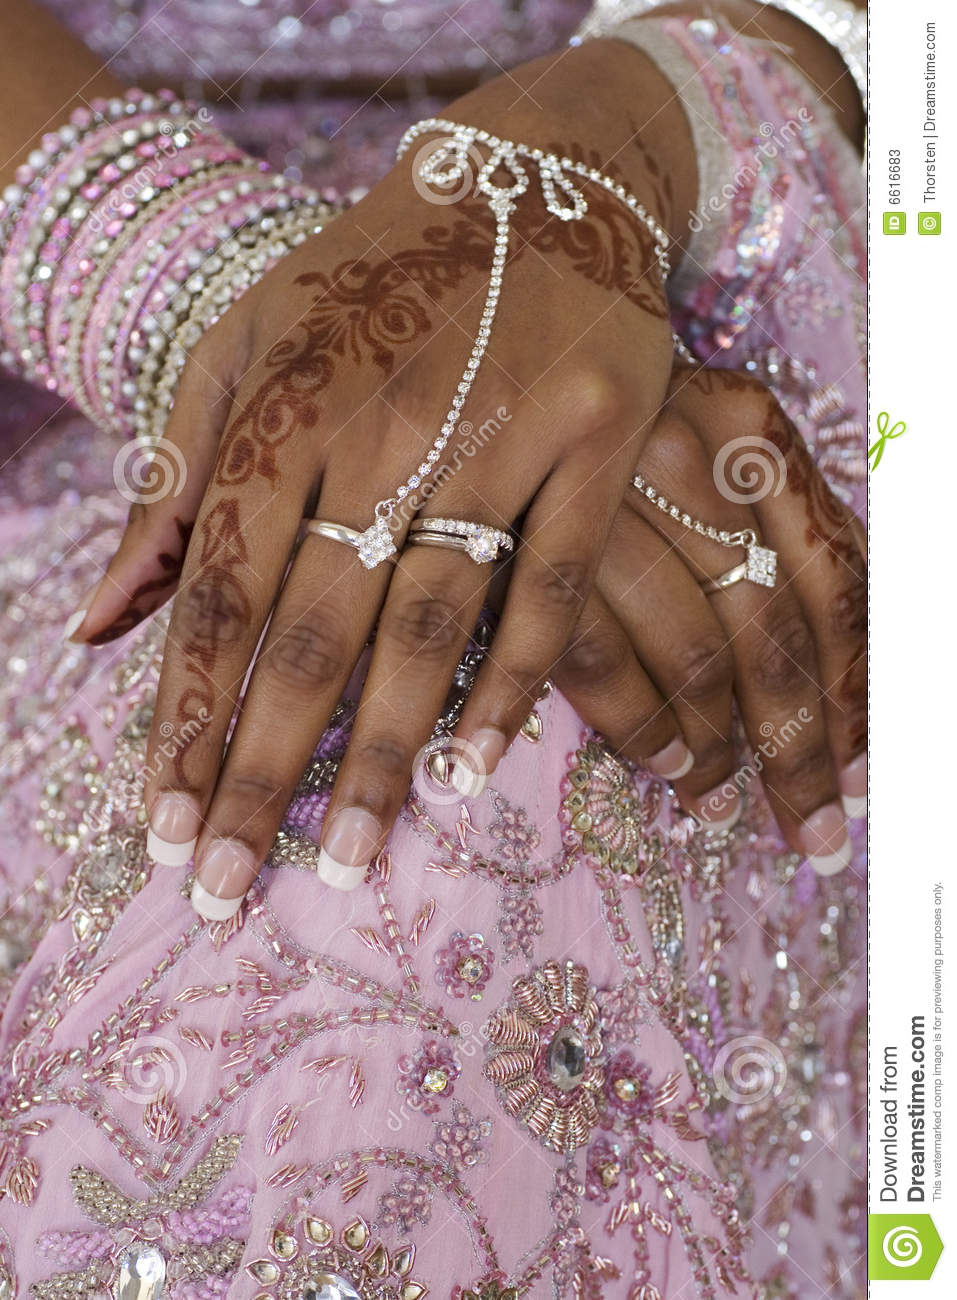 Henna Tattoo For Indian Wedding: Bride's Hand With Henna Tattoo, Indian Wedding Stock